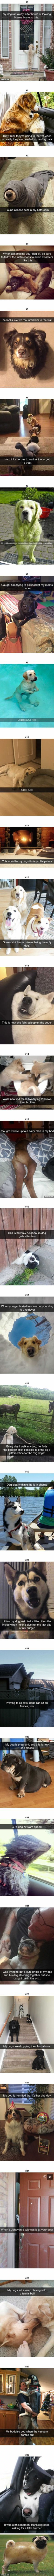 30 Hilarious Dog Snapchats That Are Impawsible Not To Laugh At